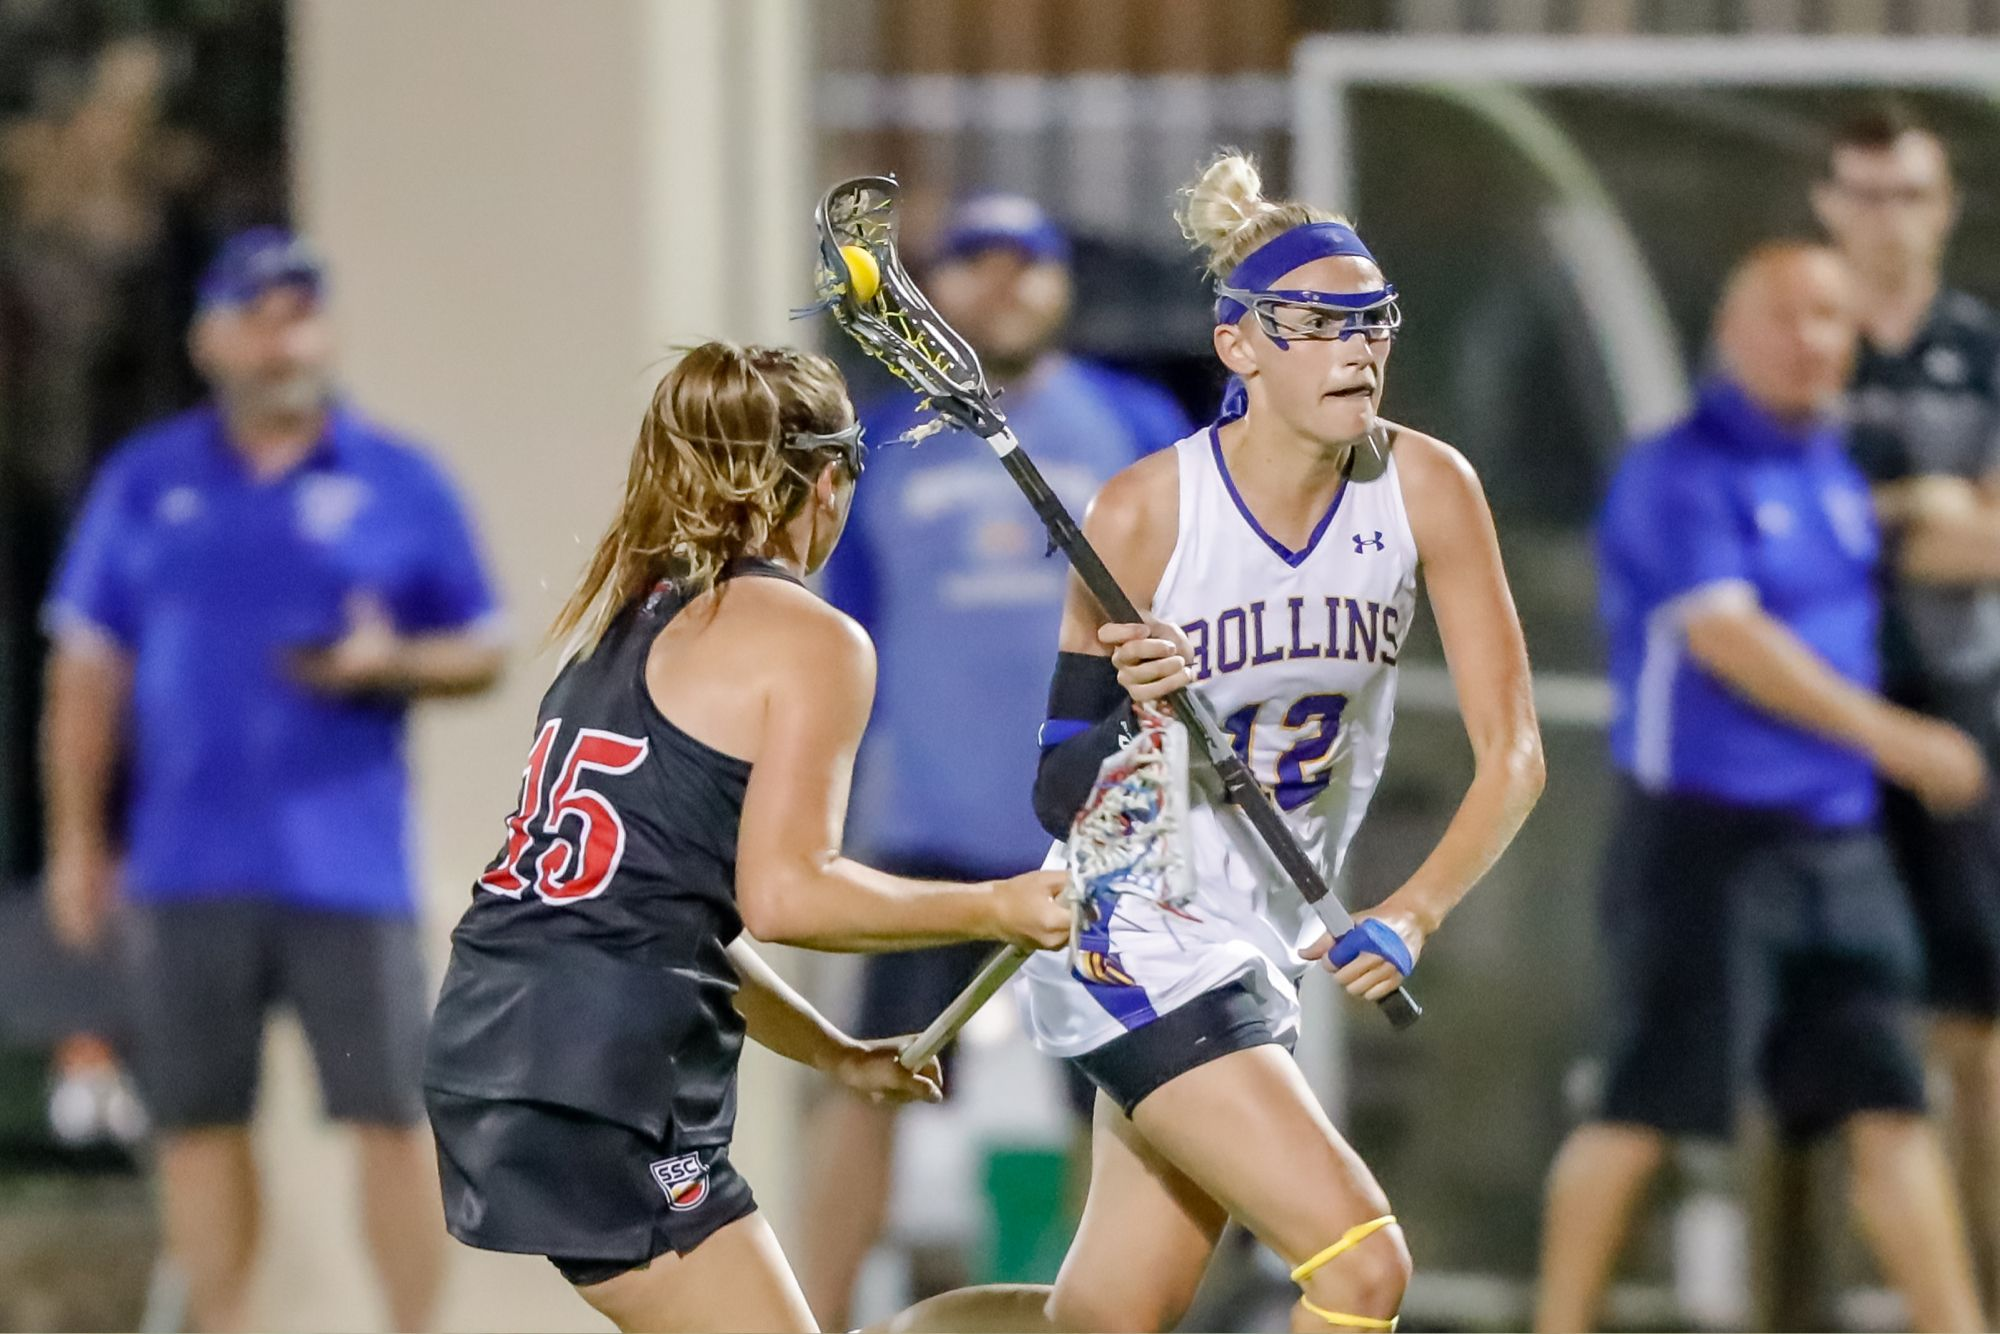 A female lacrosse player running past a defender during a game.